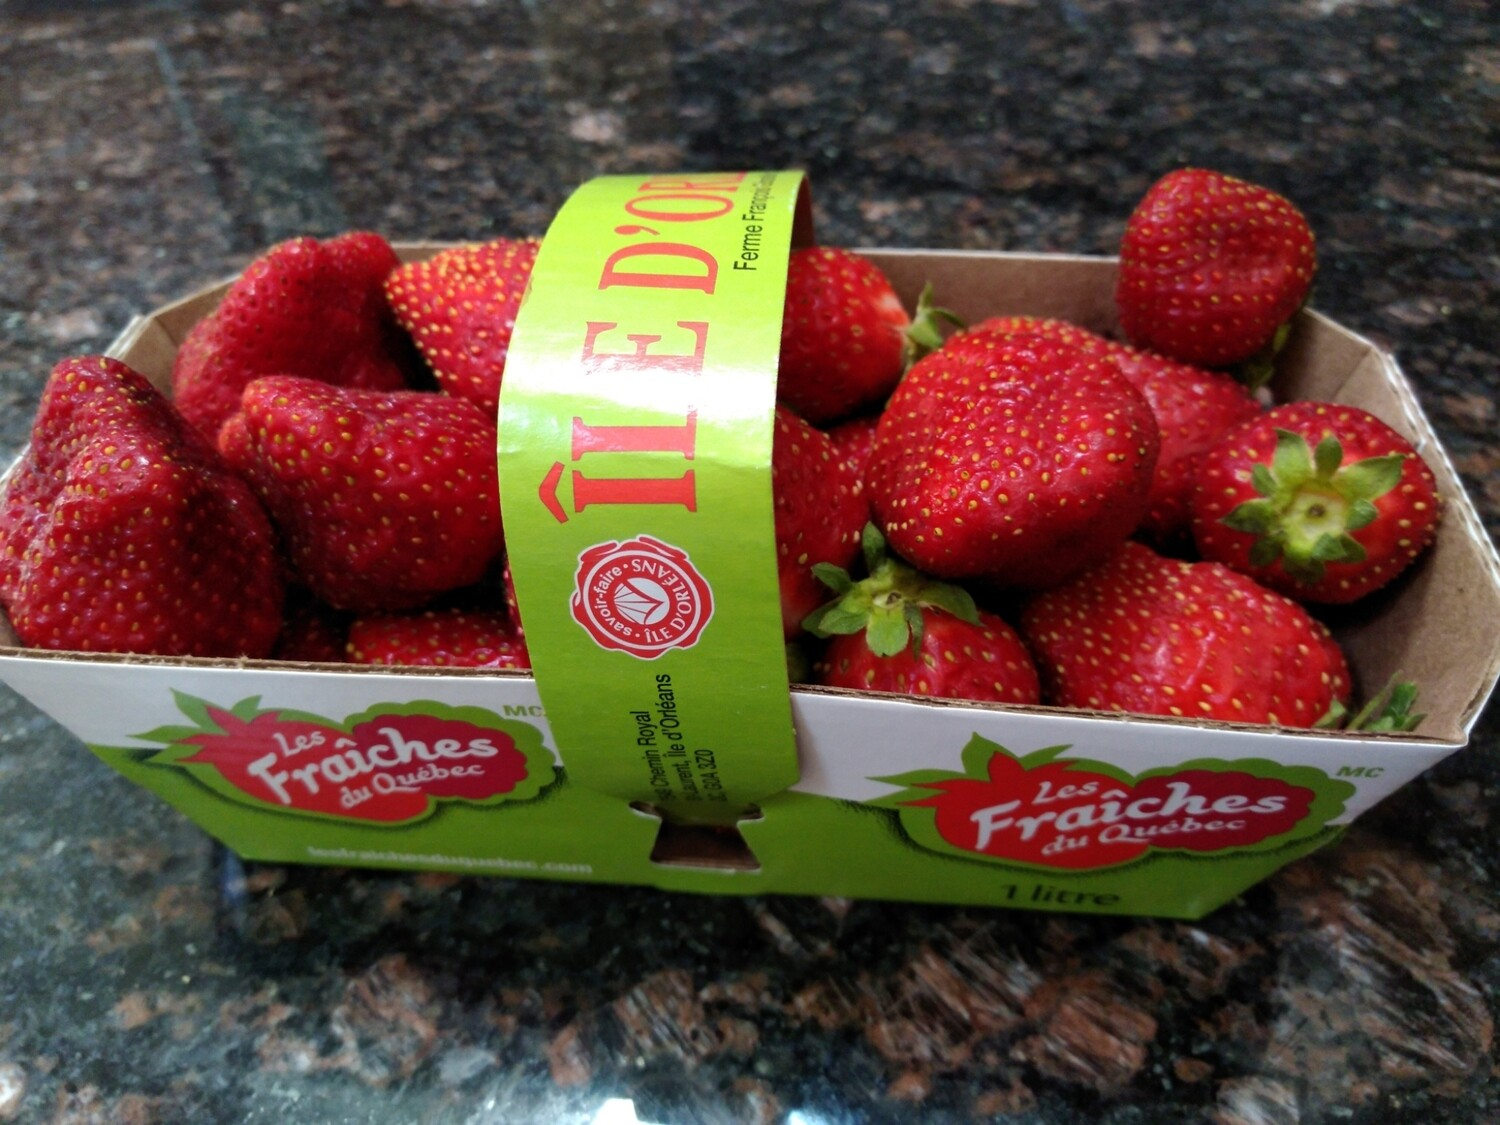 Strawberries Canadian Hothouse - 1litre basket